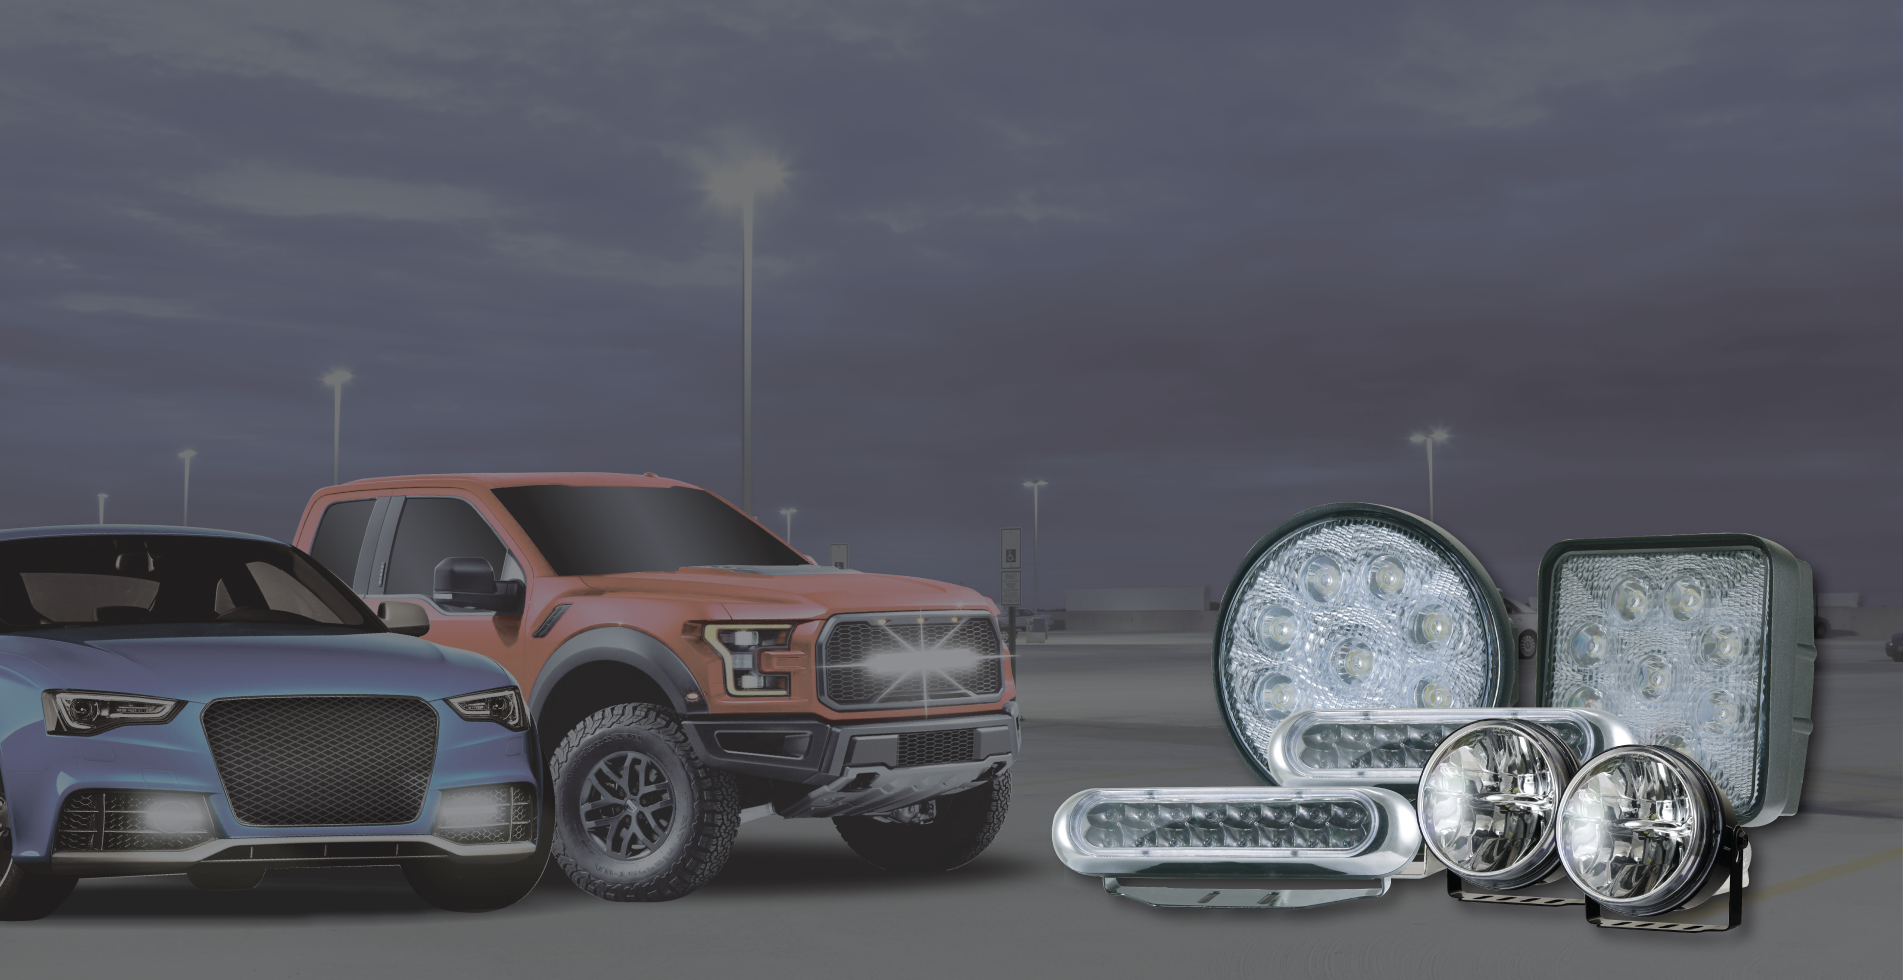 BriteLED Automotive LED Lights